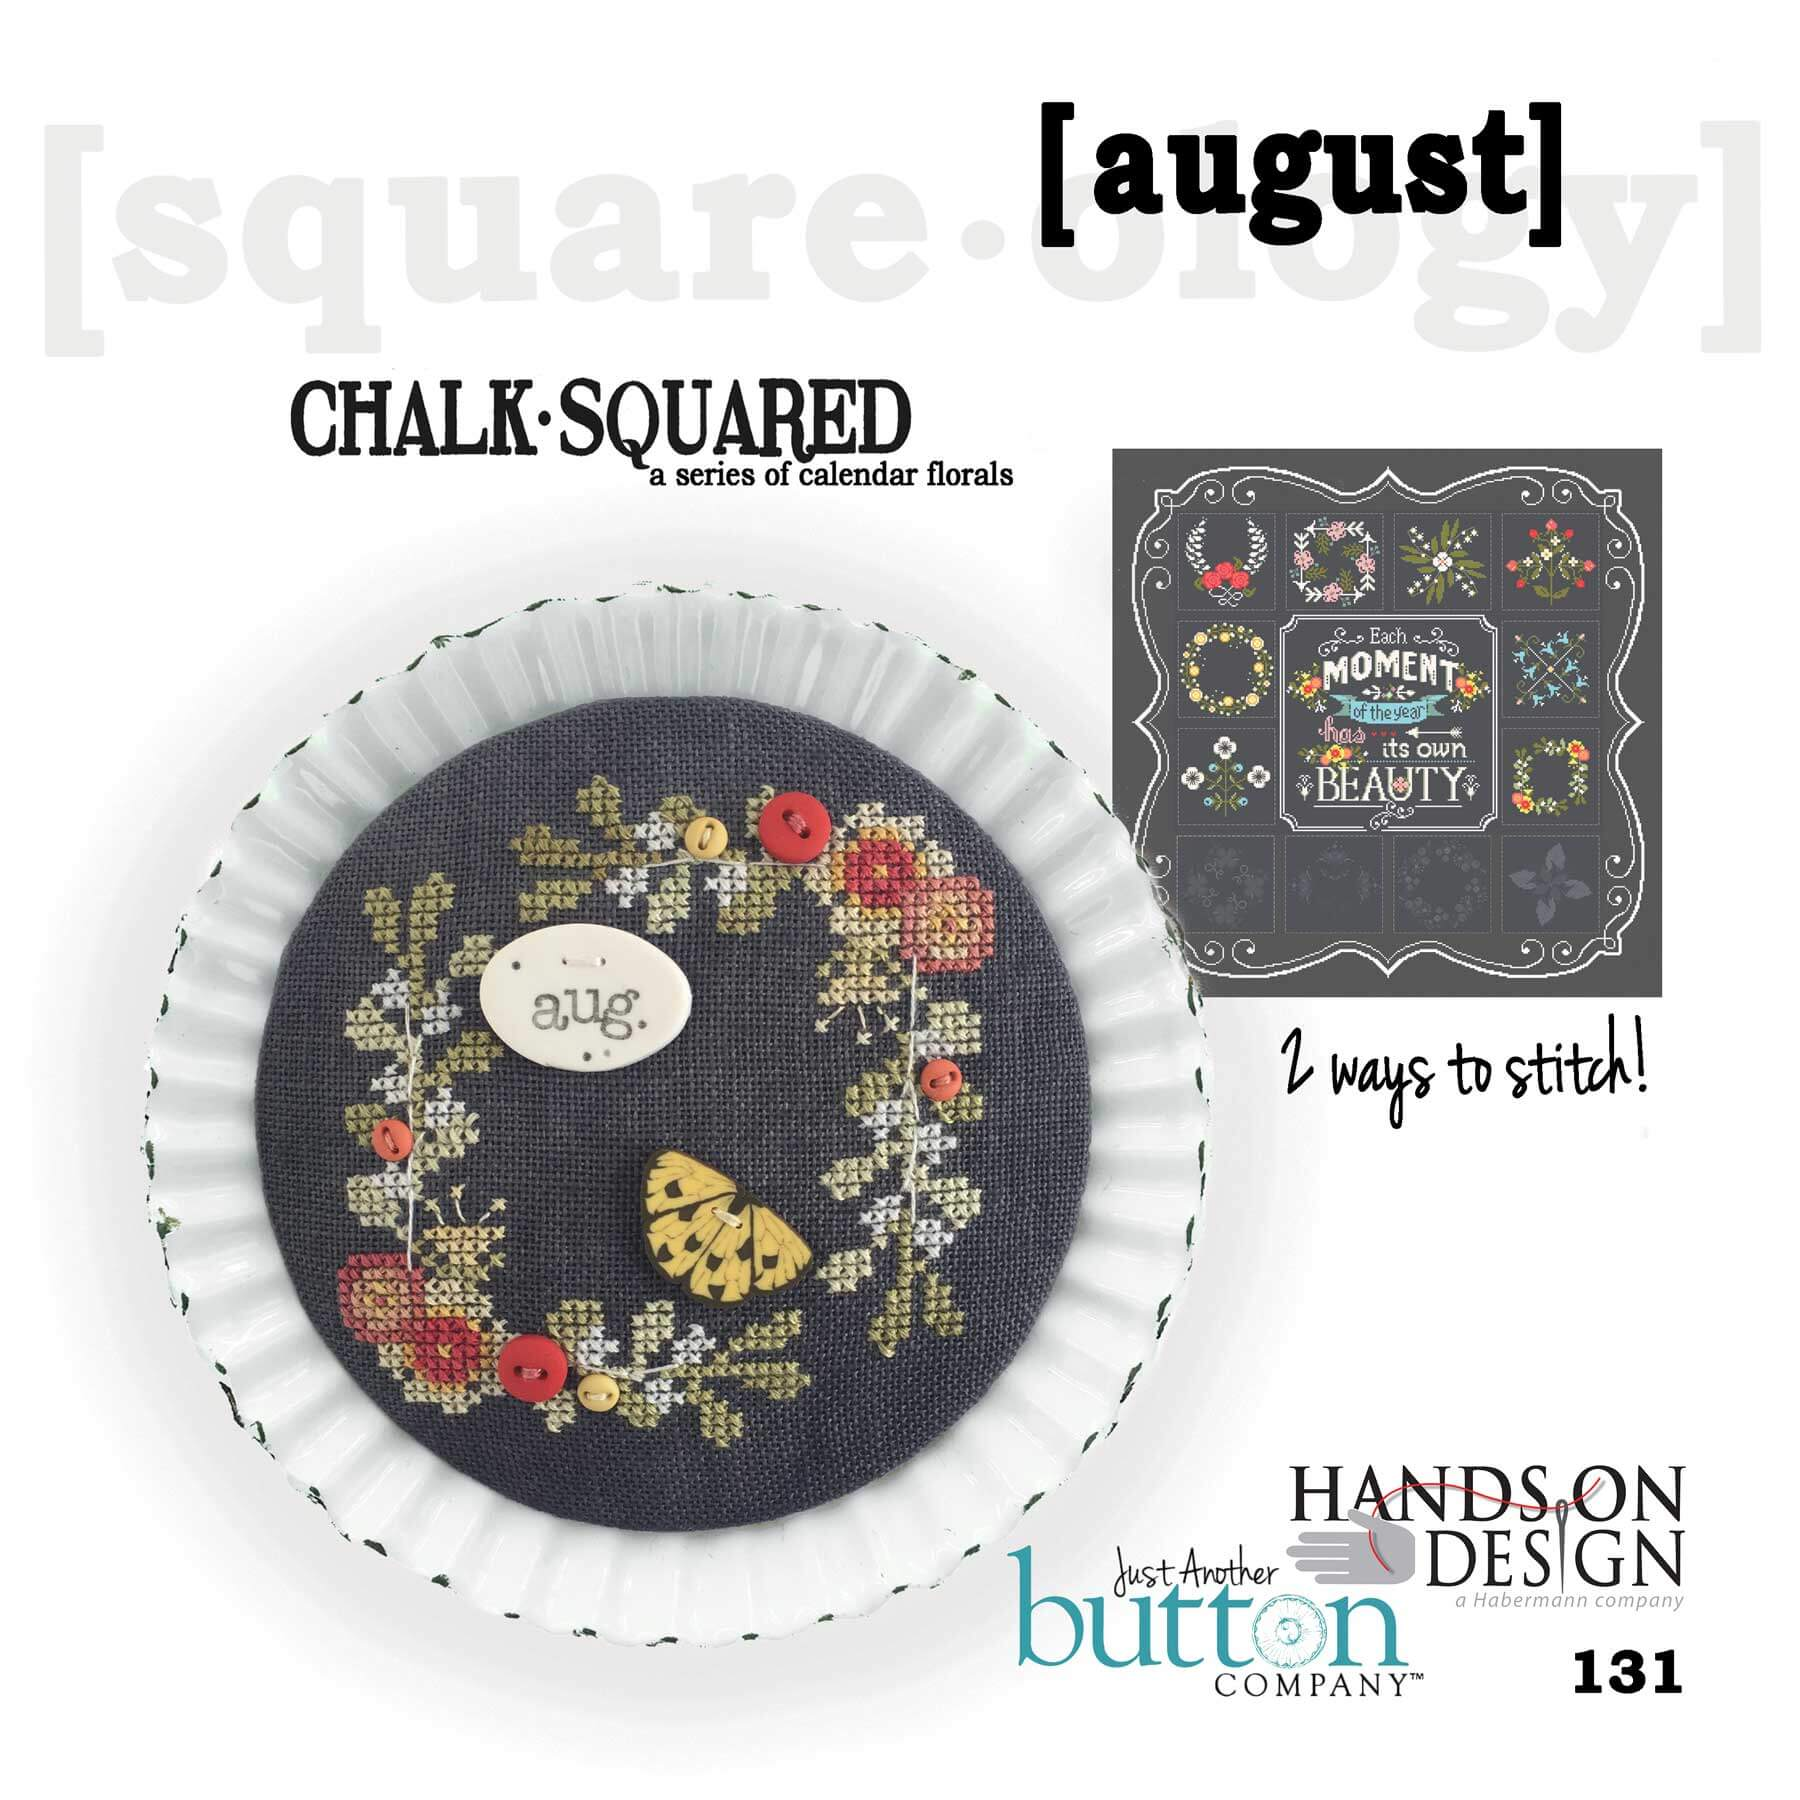 Chalk Squared: August - Hands On Design